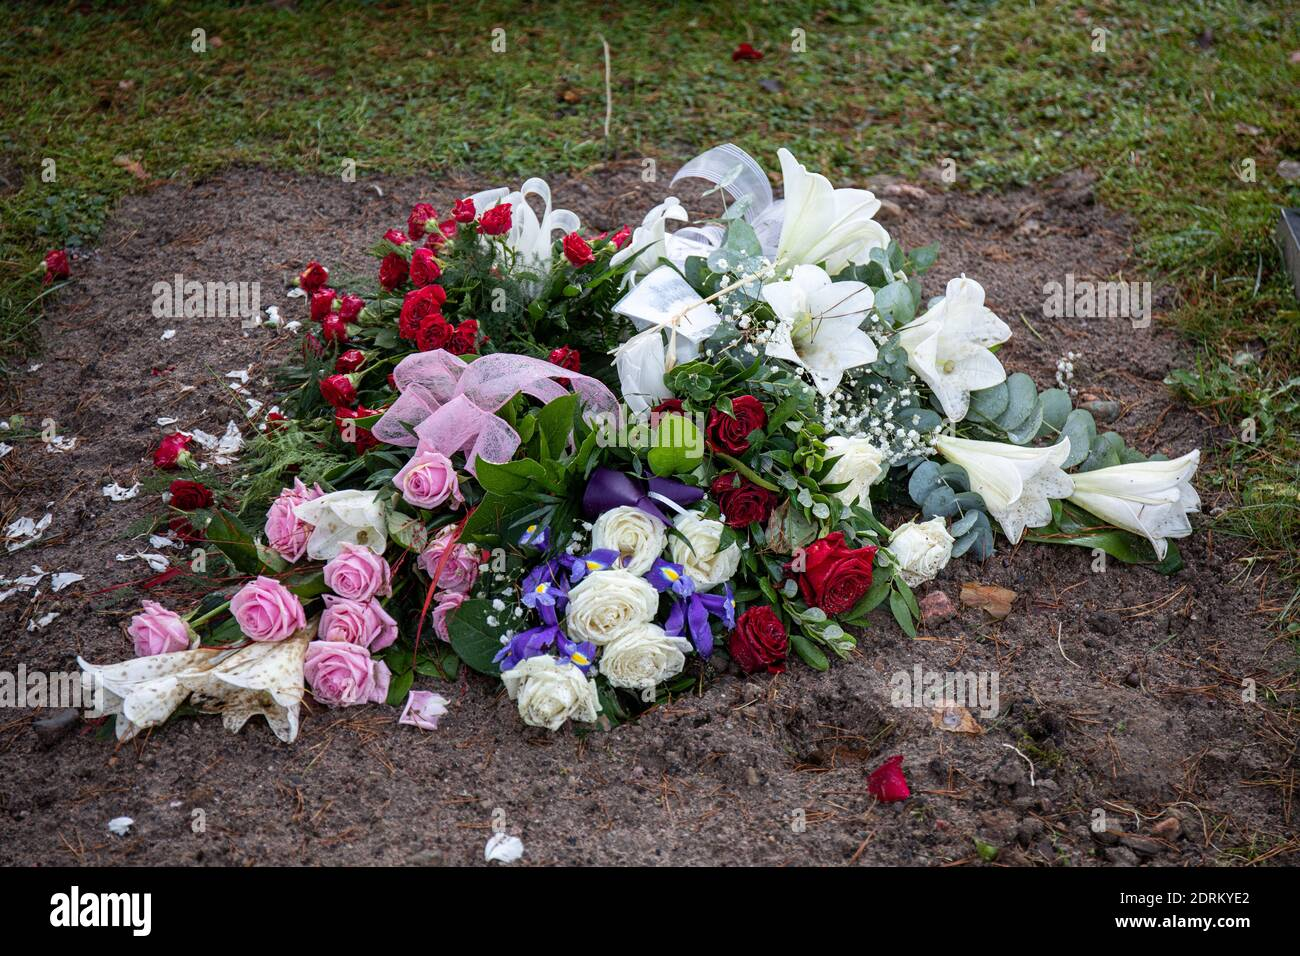 Funeral Flowers High Resolution Stock Photography And Images Alamy